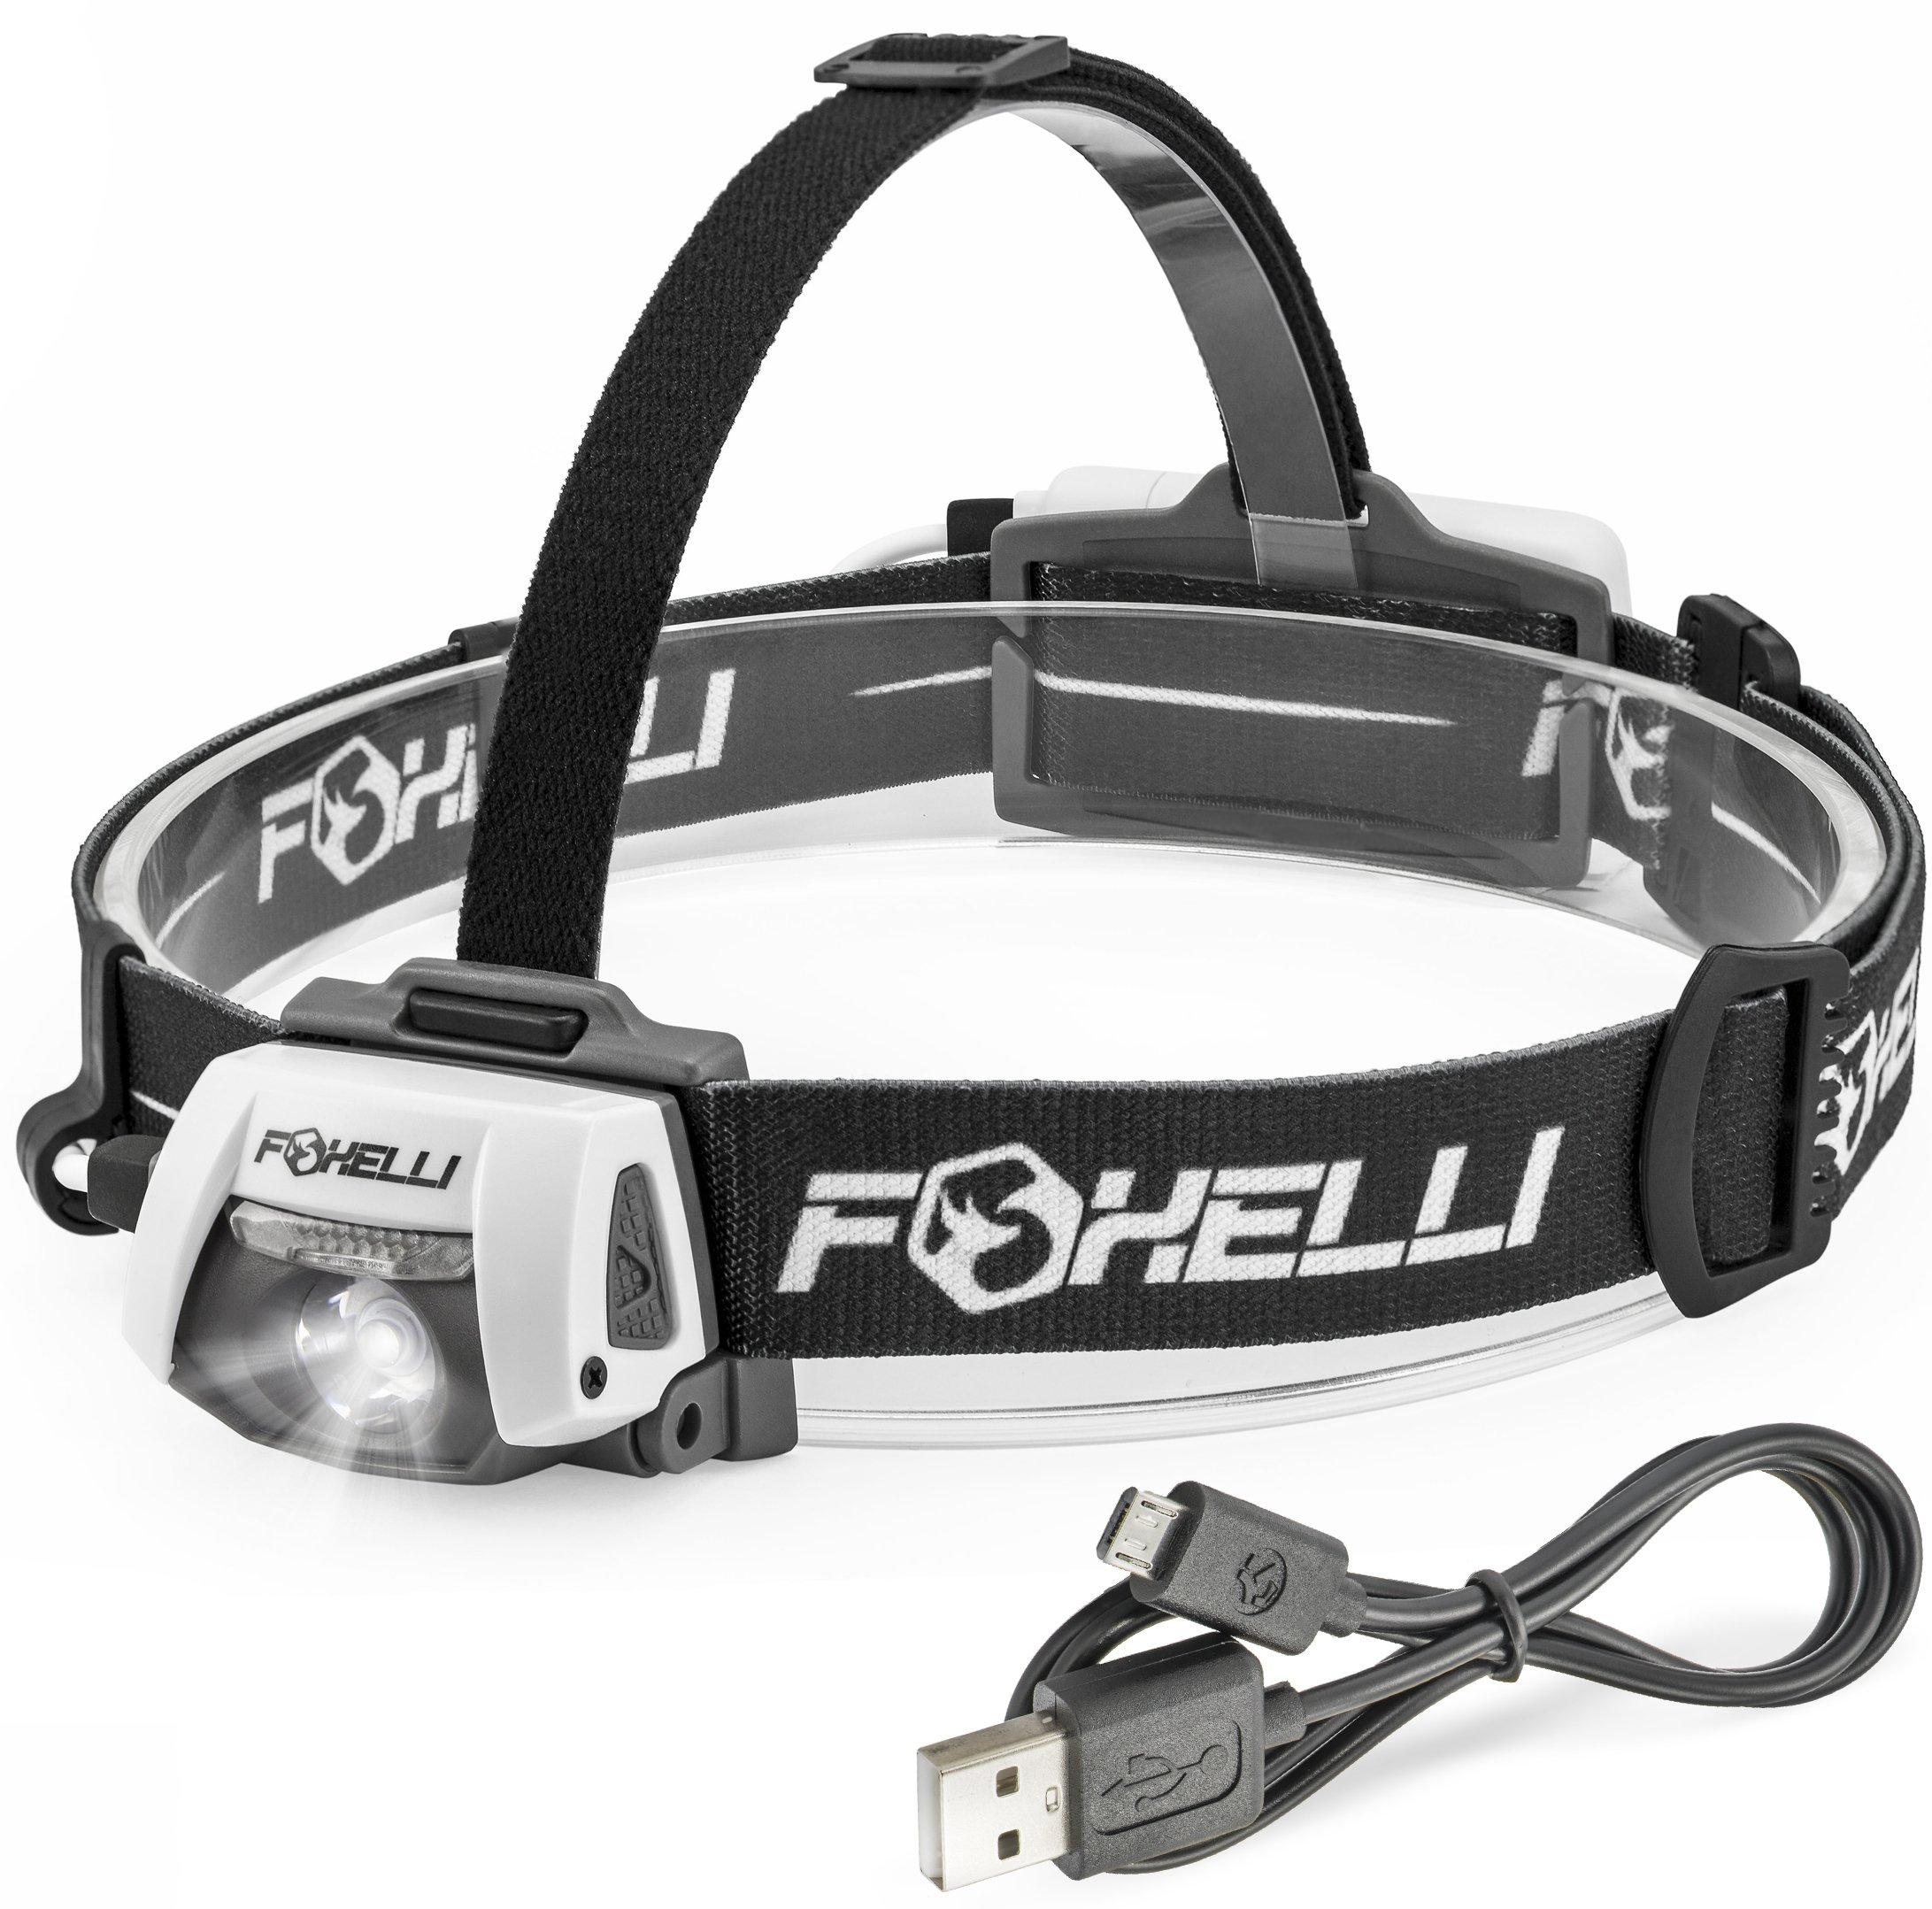 Foxelli USB Rechargeable Headlamp Flashlight – 280 Lumen, up to 100 Hours of Constant Light on a Single Charge, Ultra Bright, Waterproof, Impact Resistant, Lightweight & Comfortable Headlight